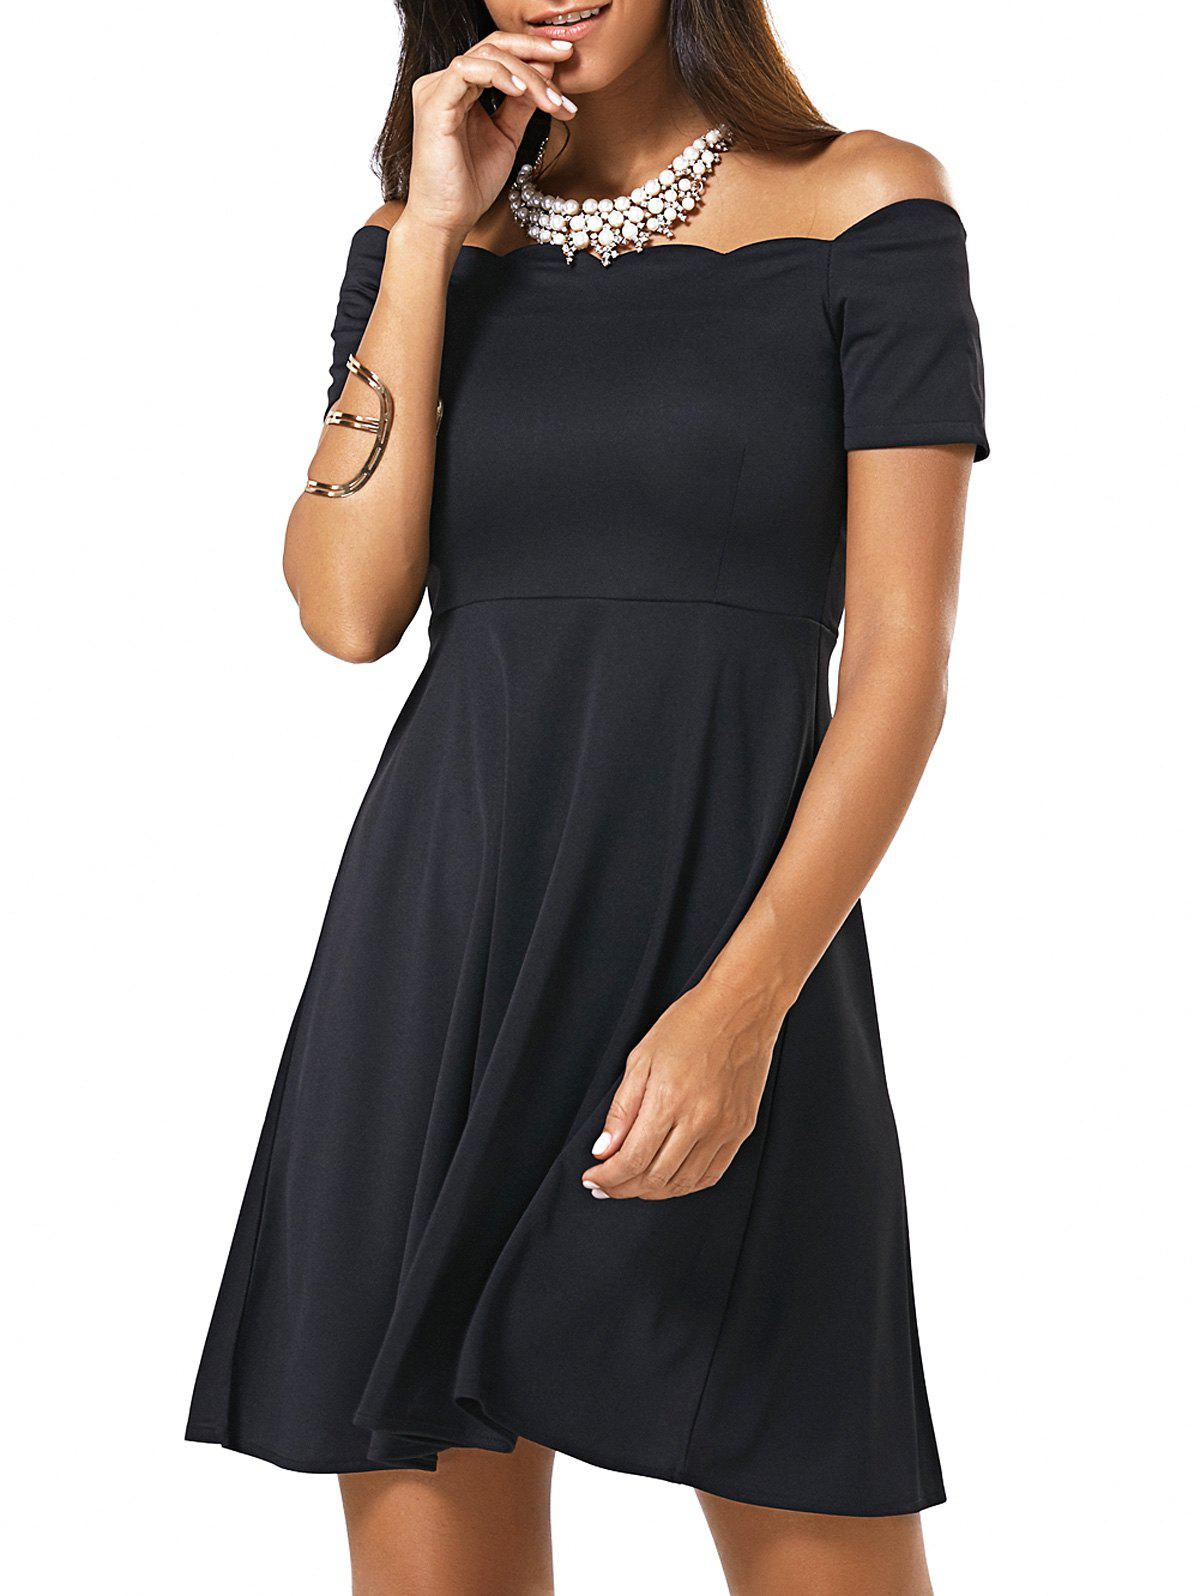 Stylish Women's Off The Shoulder Scalloped A-Line Dress - BLACK S